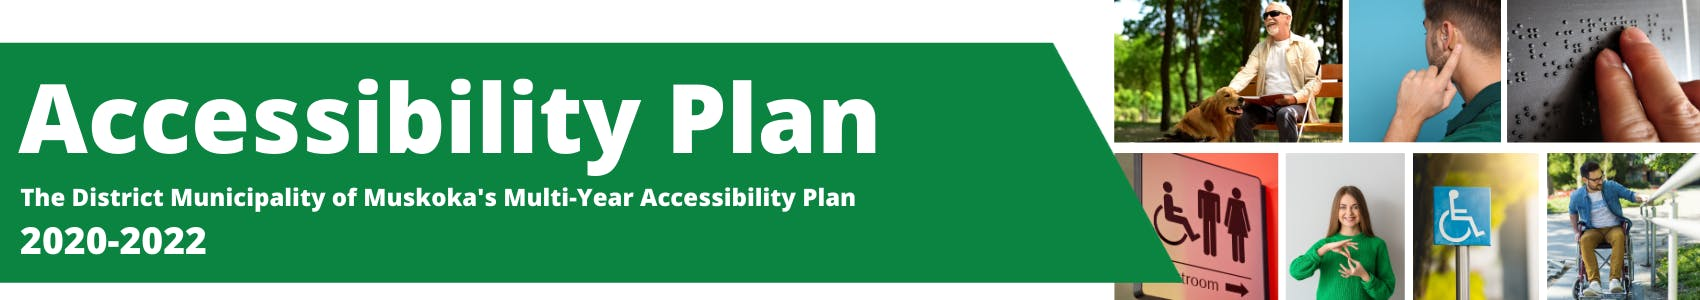 Accessibility Plan Banner